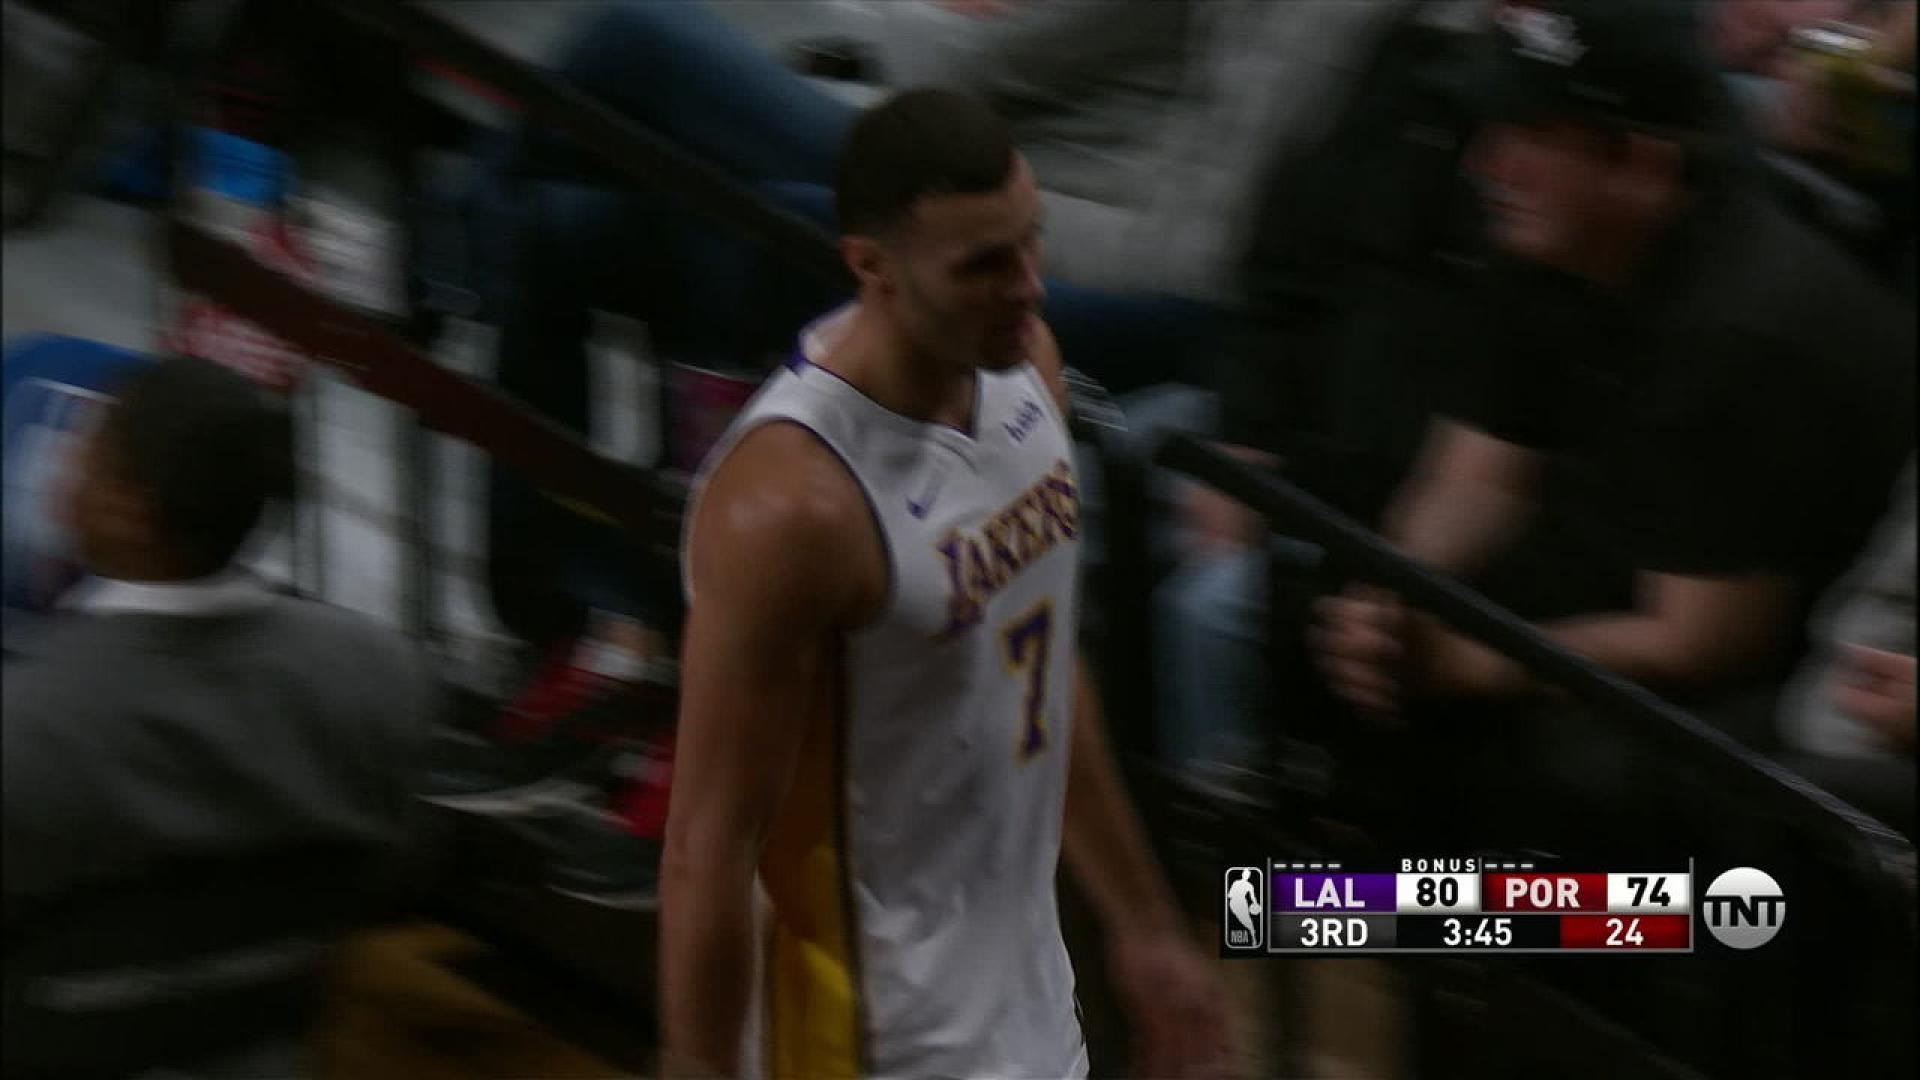 af6b2f48cf89 Los Angeles Lakers forward Larry Nance Jr. expected to be out four ...